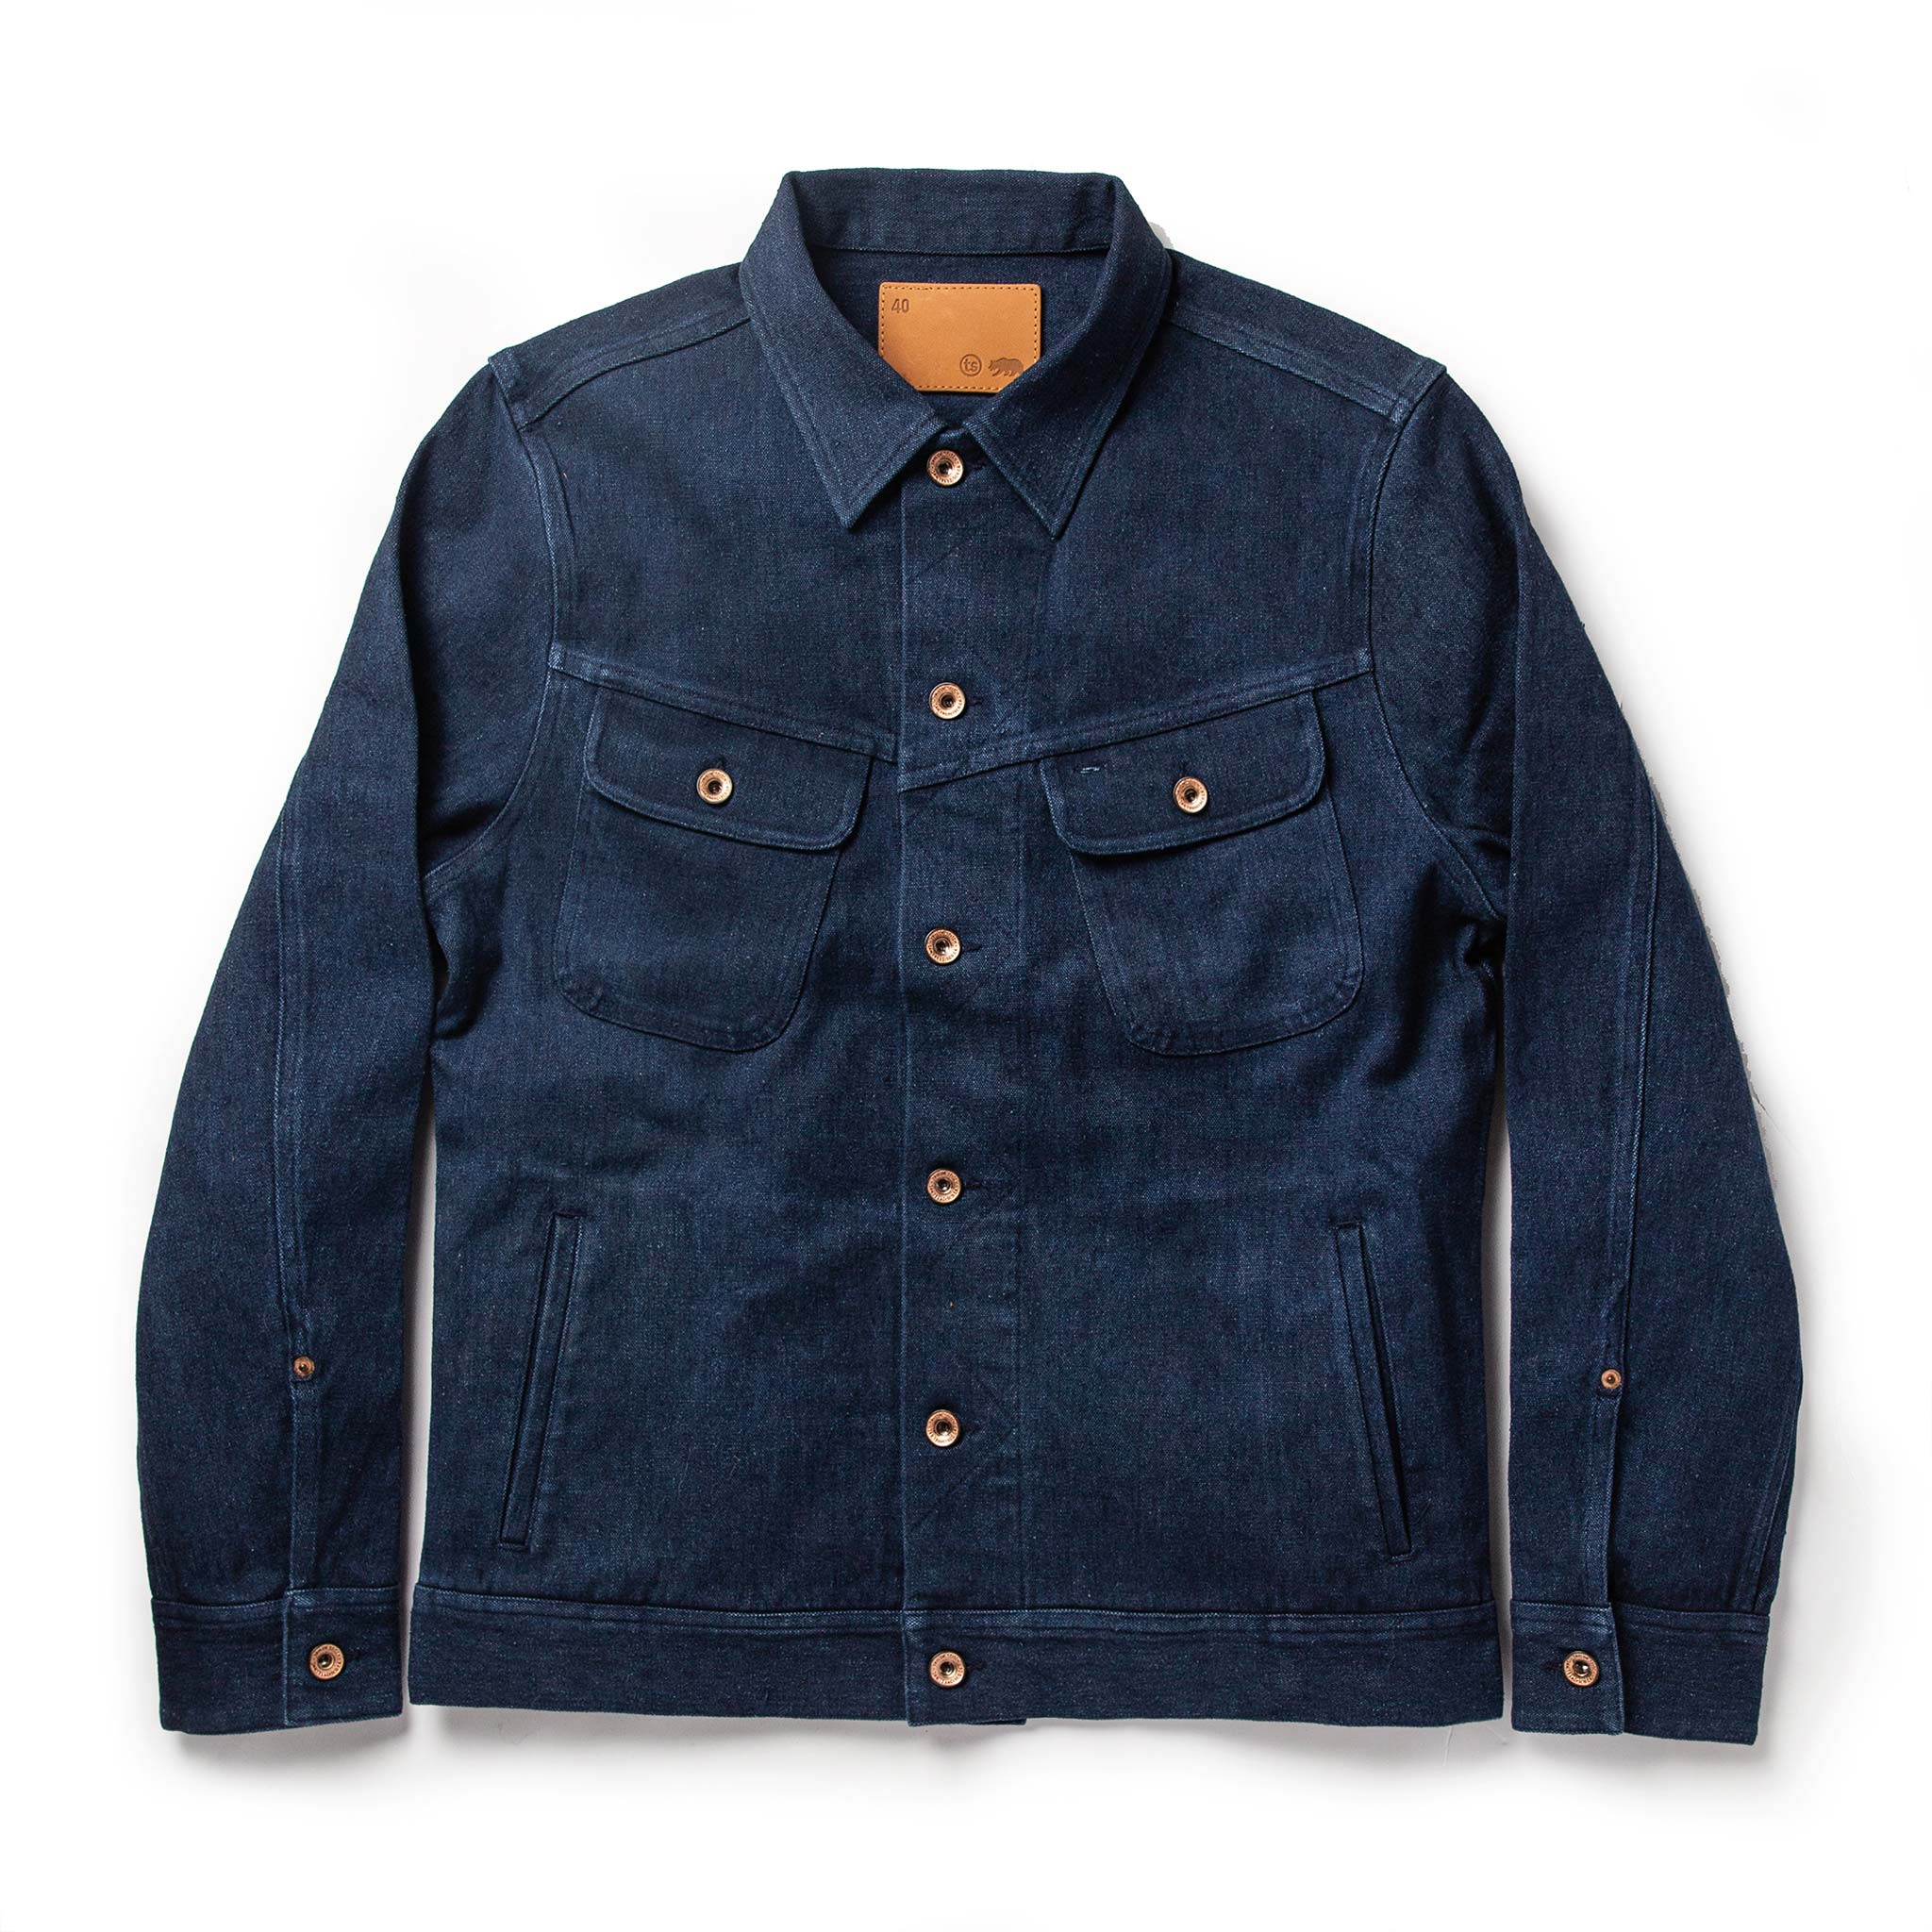 The Long Haul Jacket in Indigo Boss Duck | Taylor Stitch…